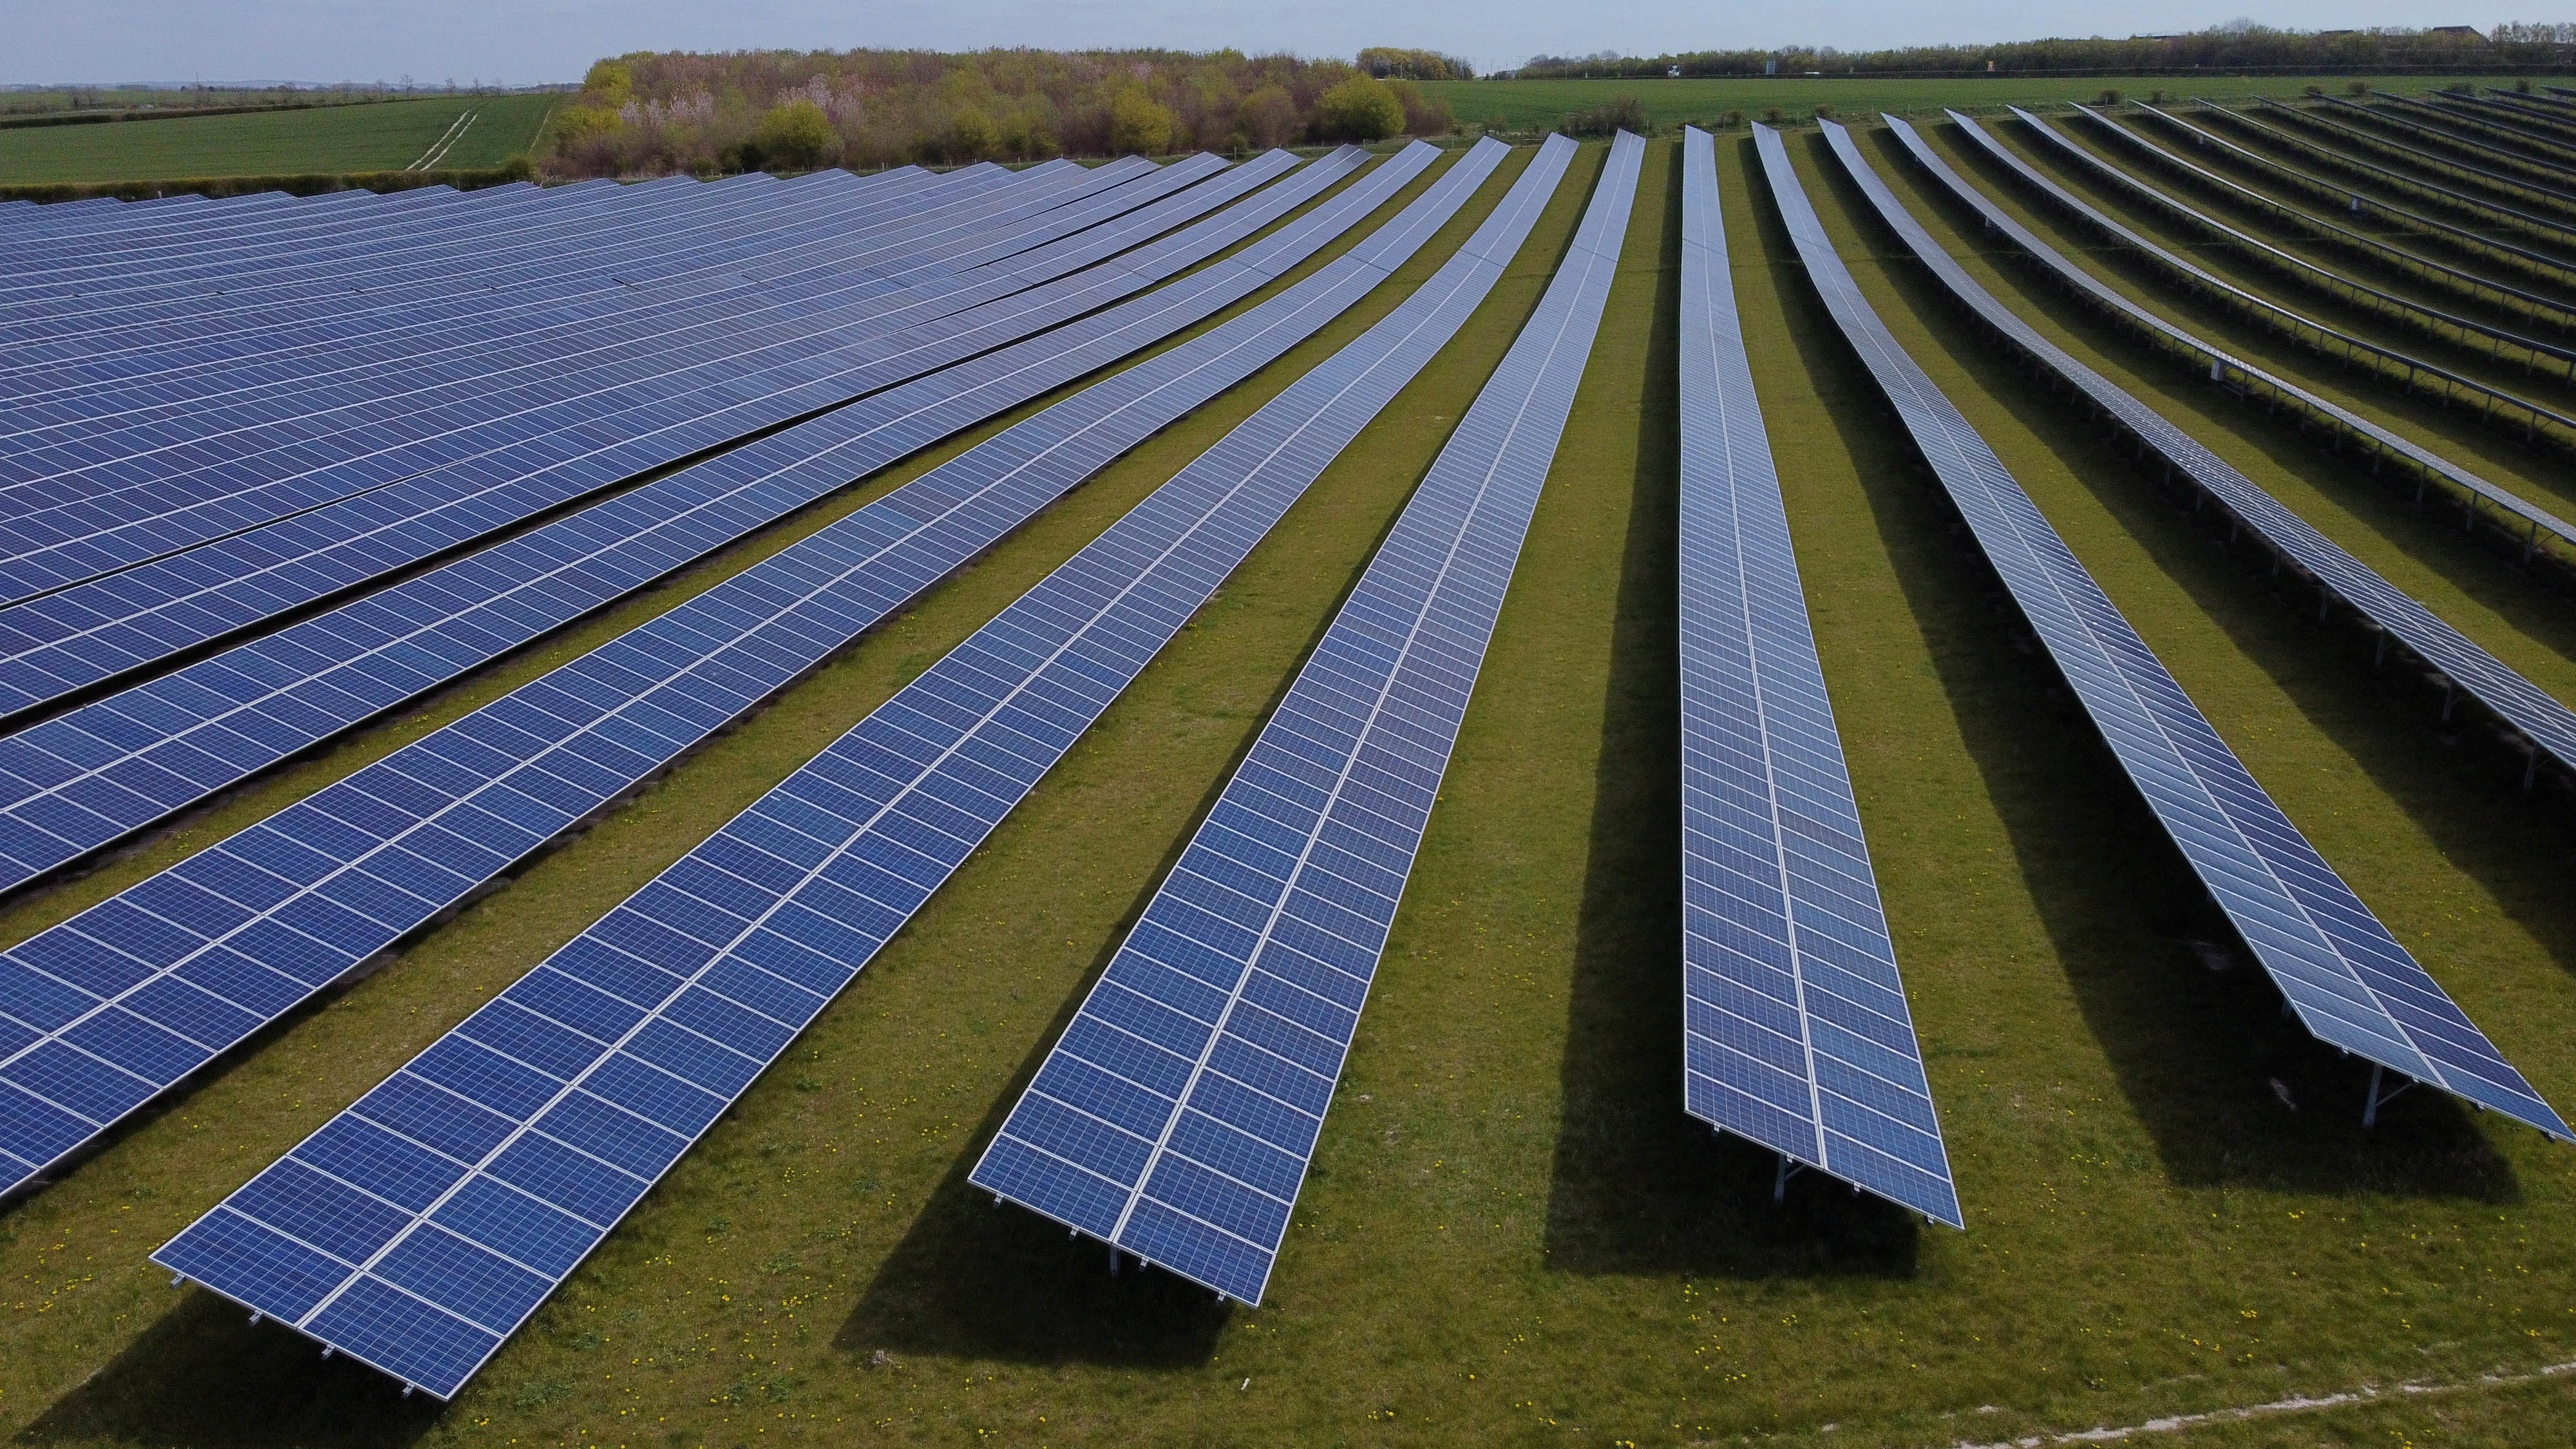 A field of solar panels is seen near Royston, Britain, April 26, 2021. Picture taken with a drone. REUTERS/Matthew Childs